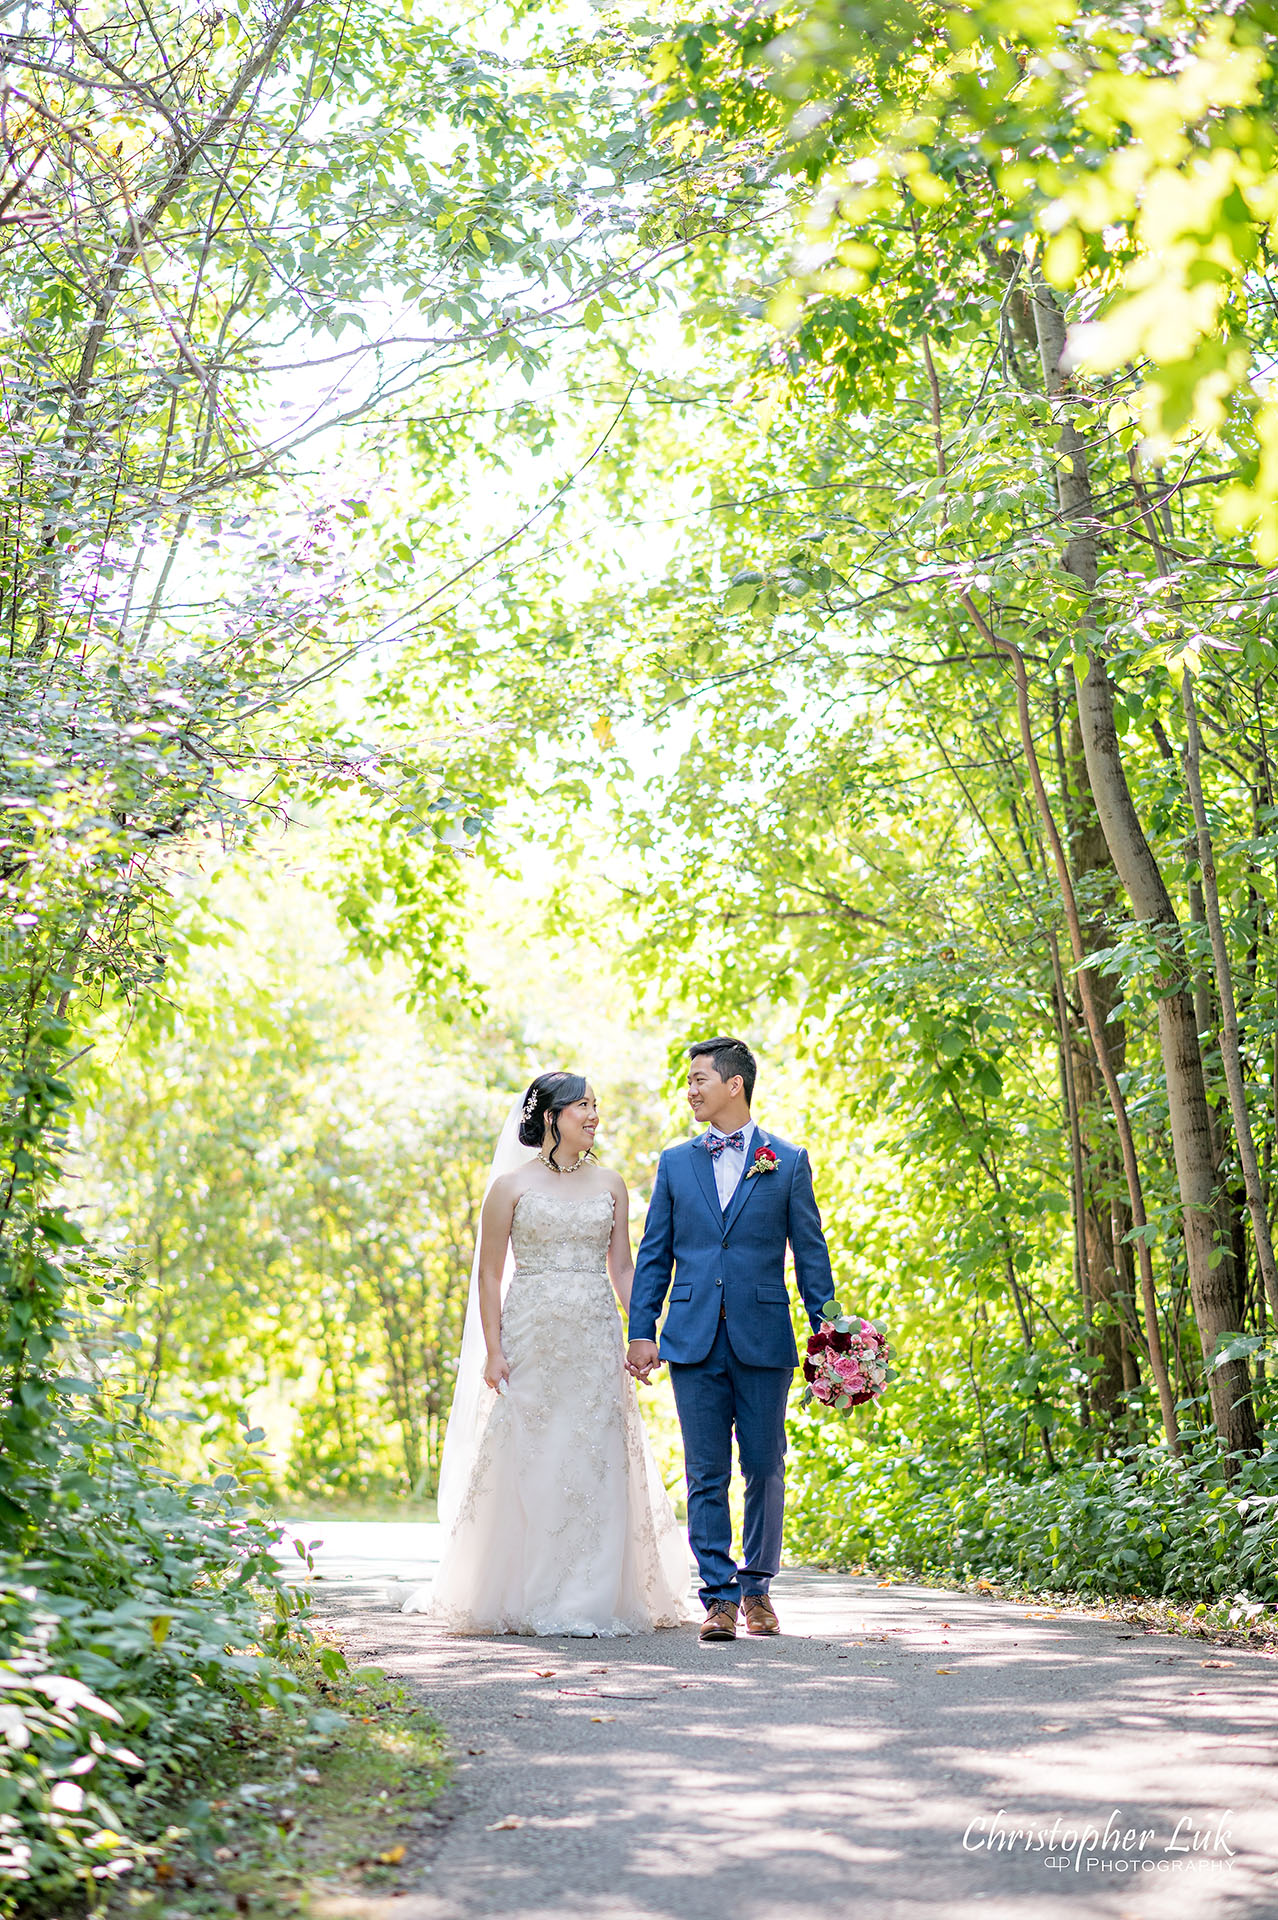 Christopher Luk Toronto Wedding Photographer Bridle Trail Baptist Church Unionville Main Street Crystal Fountain Event Venue Bride Groom Natural Photojournalistic Candid Creative Portrait Session Pictures Holding Hands Walking Together Path Trail Walkway Park Forest